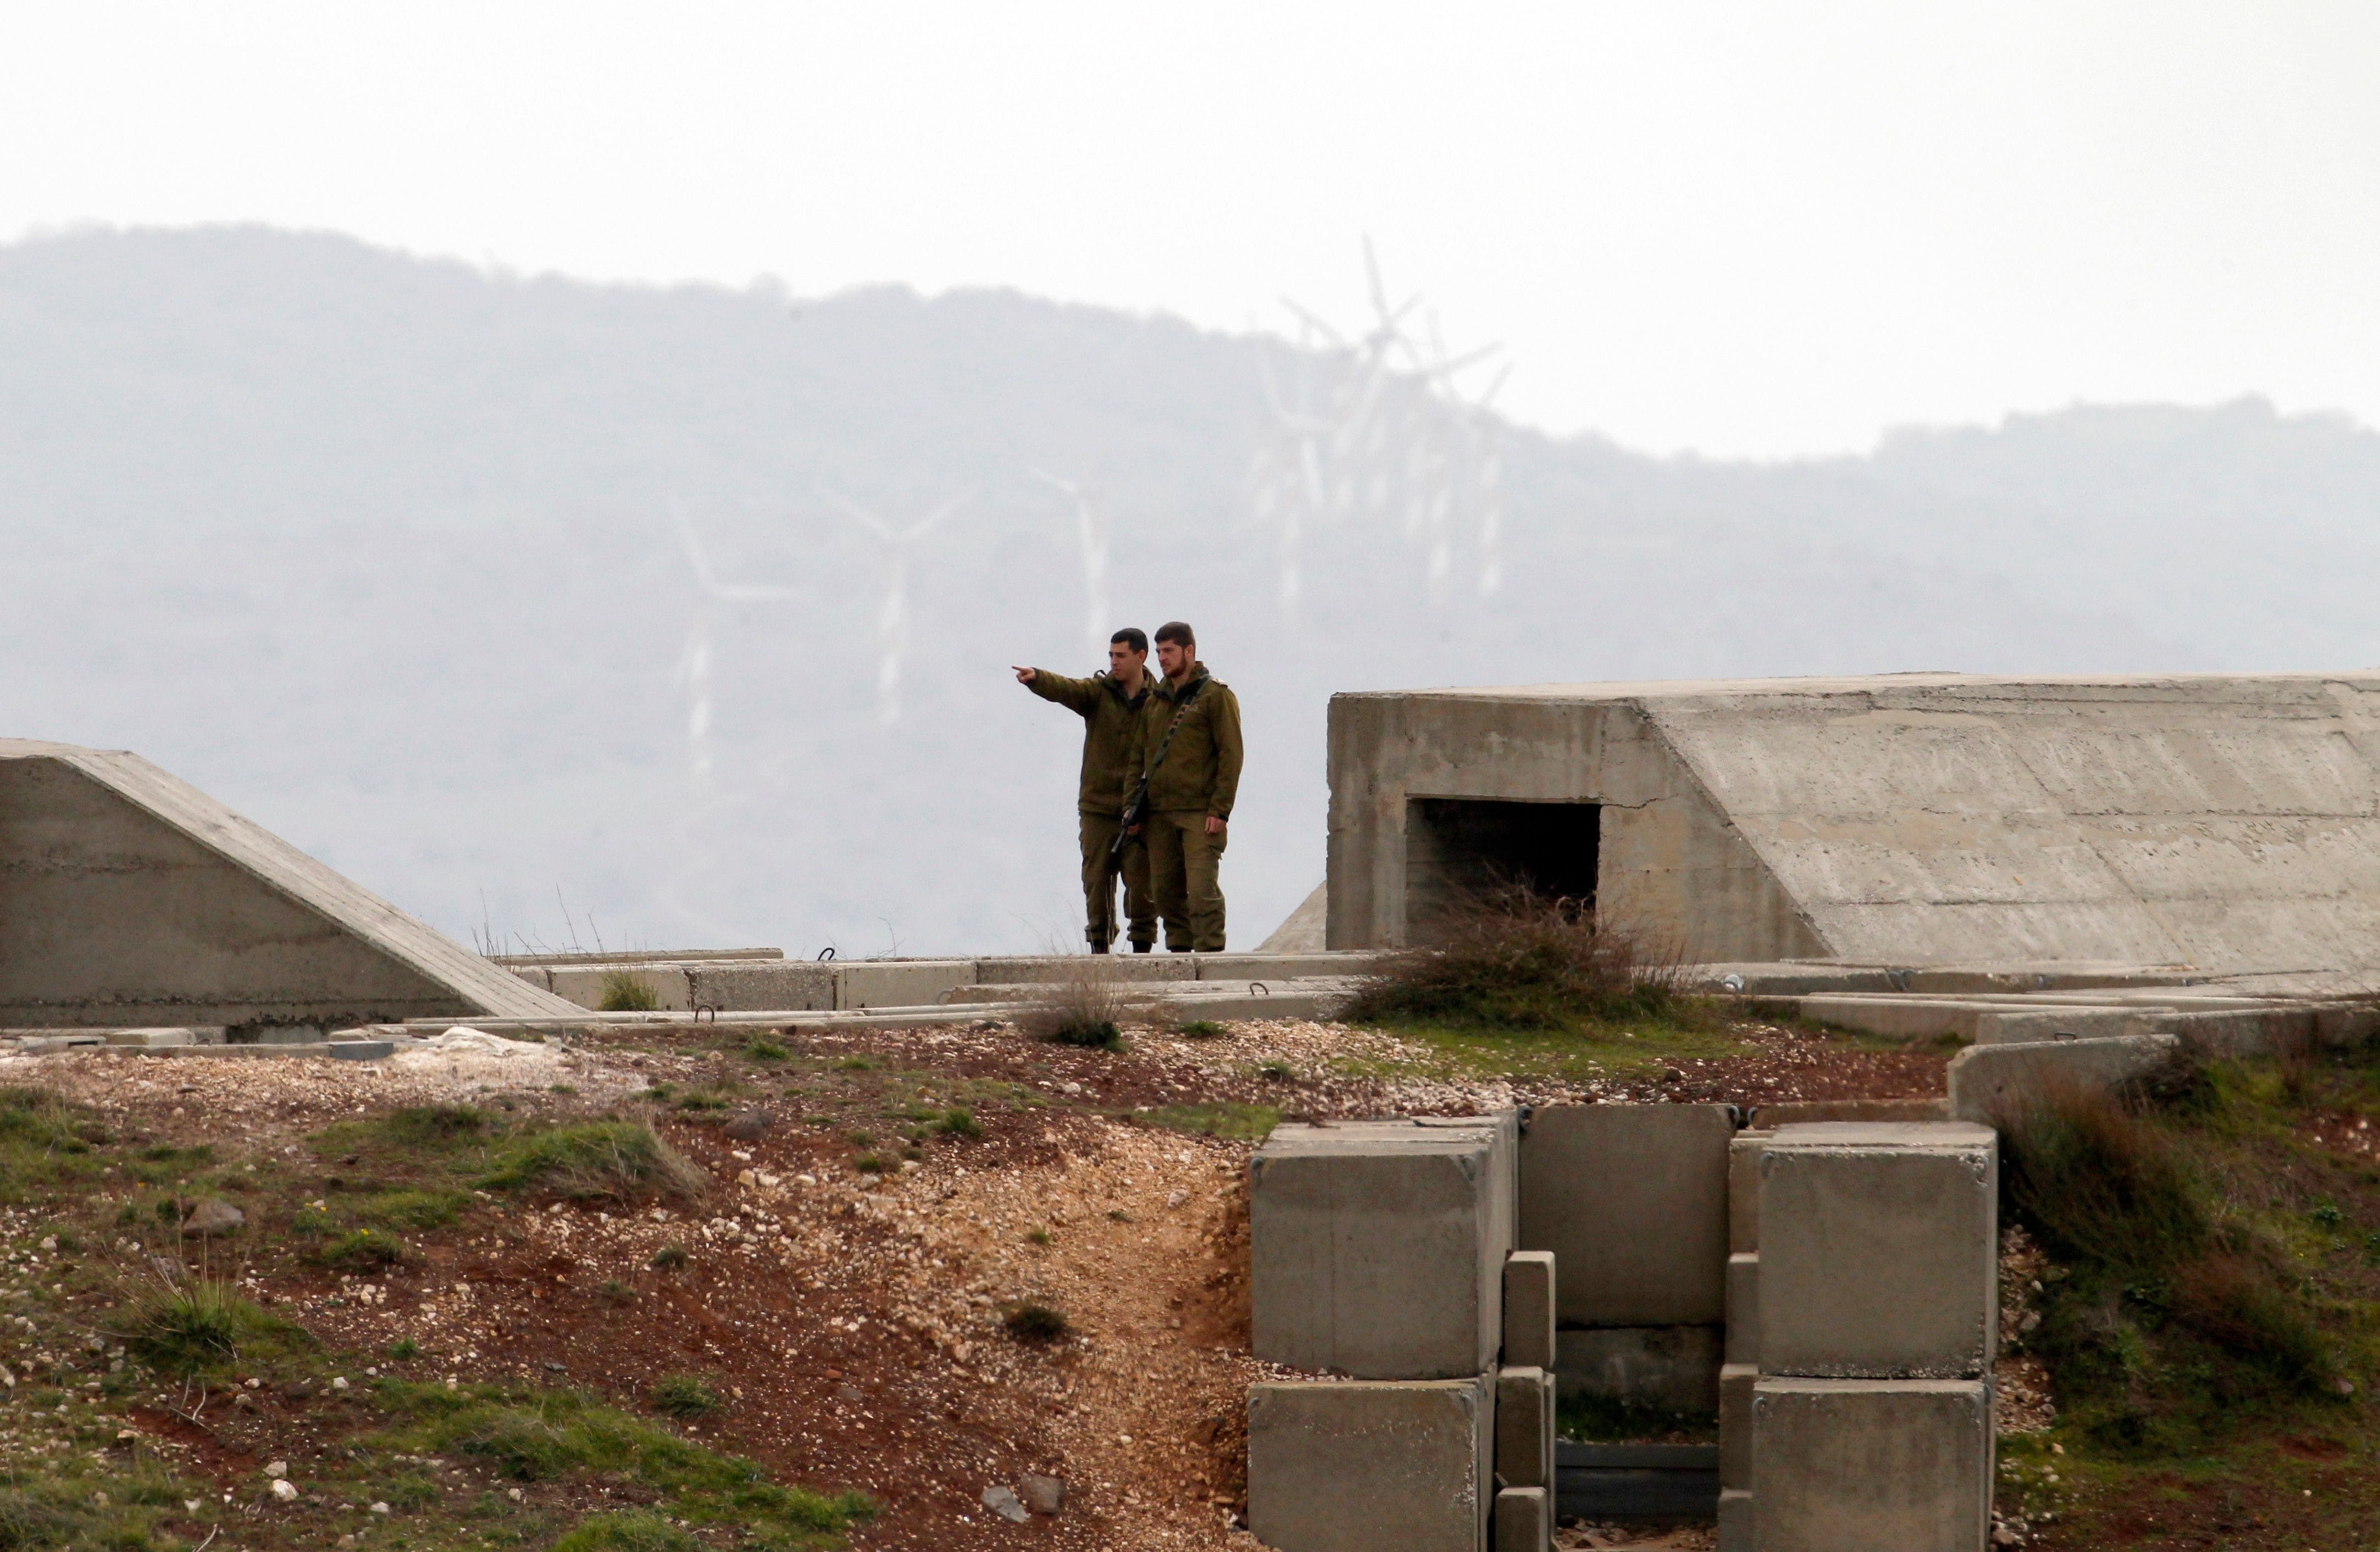 A picture taken on February 11, 2018 shows an Israeli soldiers deployed in the Israeli-annexed Golan Heights near the border with Syria.Israel issued stark warnings on Sunday over Iran's presence in neighbouring Syria after a confrontation threatened to open a new and unpredictable period in the country's seven-year civil war. / AFP PHOTO / JALAA MAREY (Photo credit should read JALAA MAREY/AFP/Getty Images)